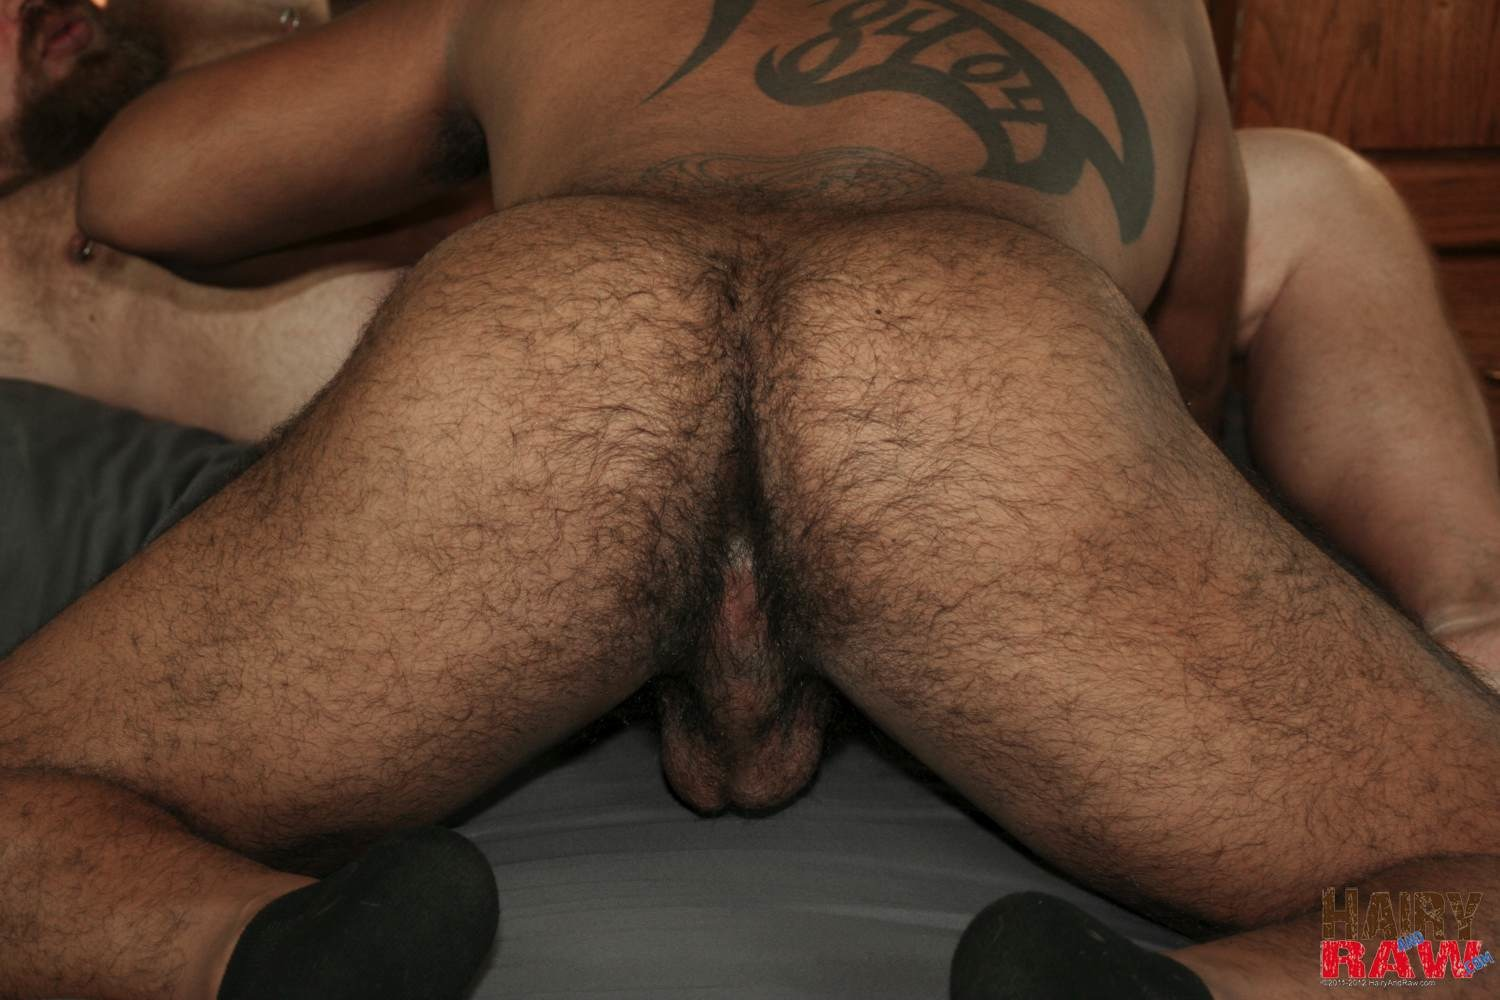 Hairy-and-Raw-DJ-Russo-and-Rico-Vega-Chubby-Bears-Barebacking-Amateur-Gay-Porn-06 Amateur Interracial Chubby Bears Barebacking Sex Pigs